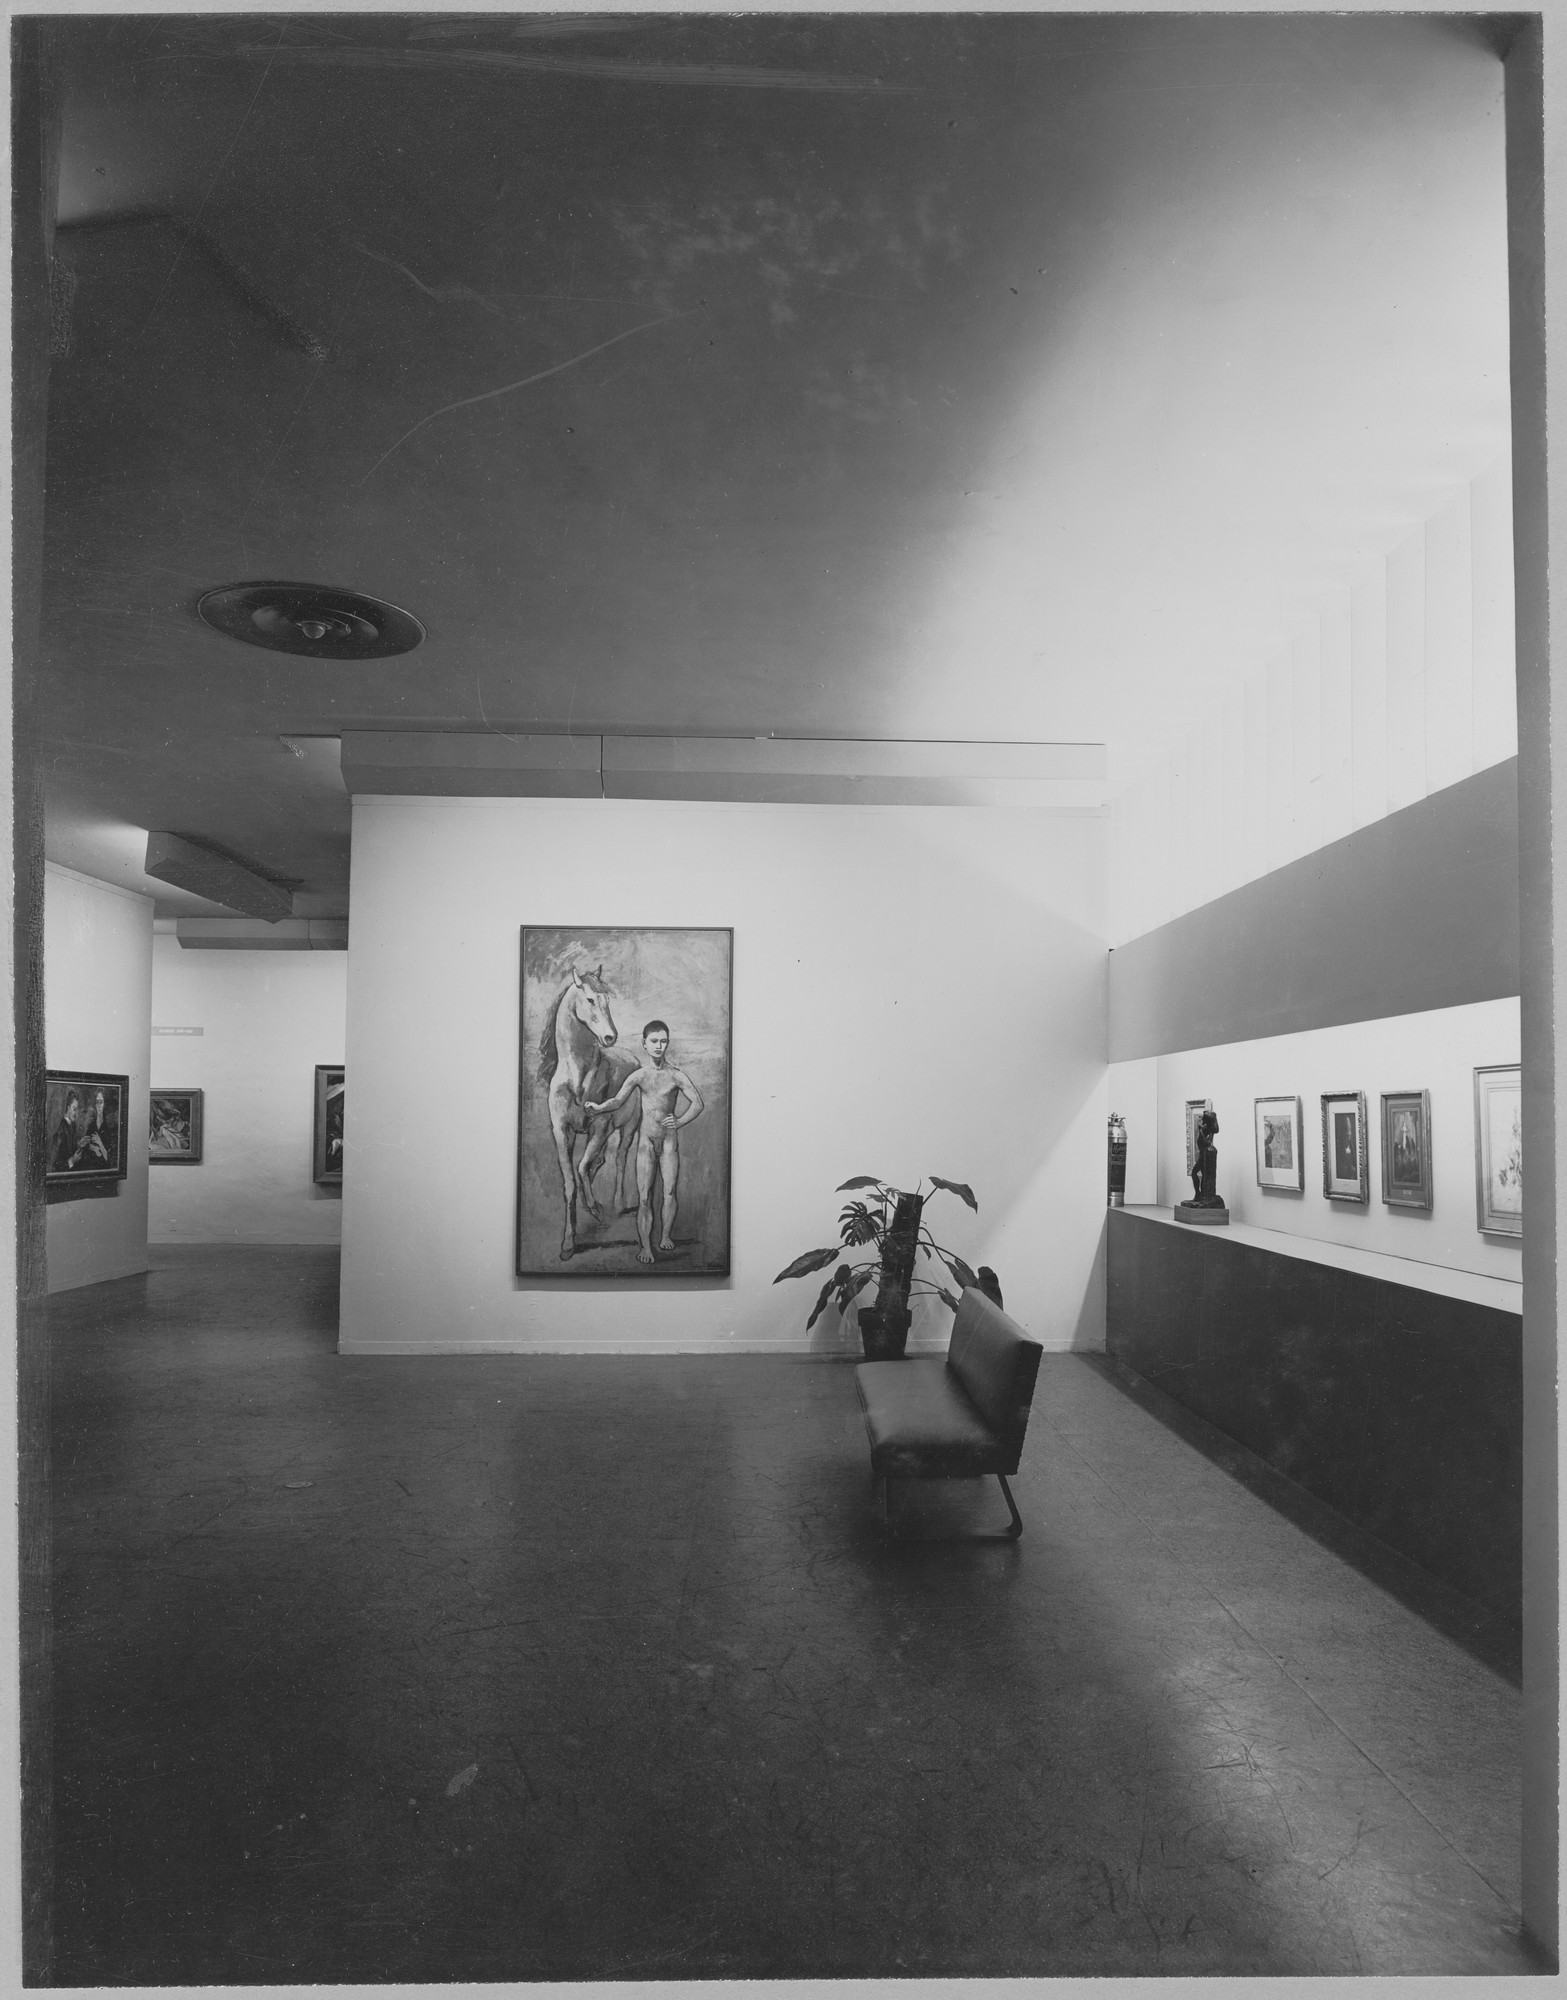 "Installation view of the exhibition, ""Paintings, Sculpture and Graphic Arts from the Museum Collection."" July 2, 1946 [unknown closing date]. Photographic Archive. The Museum of Modern Art Archives, New York. IN324.1. Photograph by Soichi Sunami."